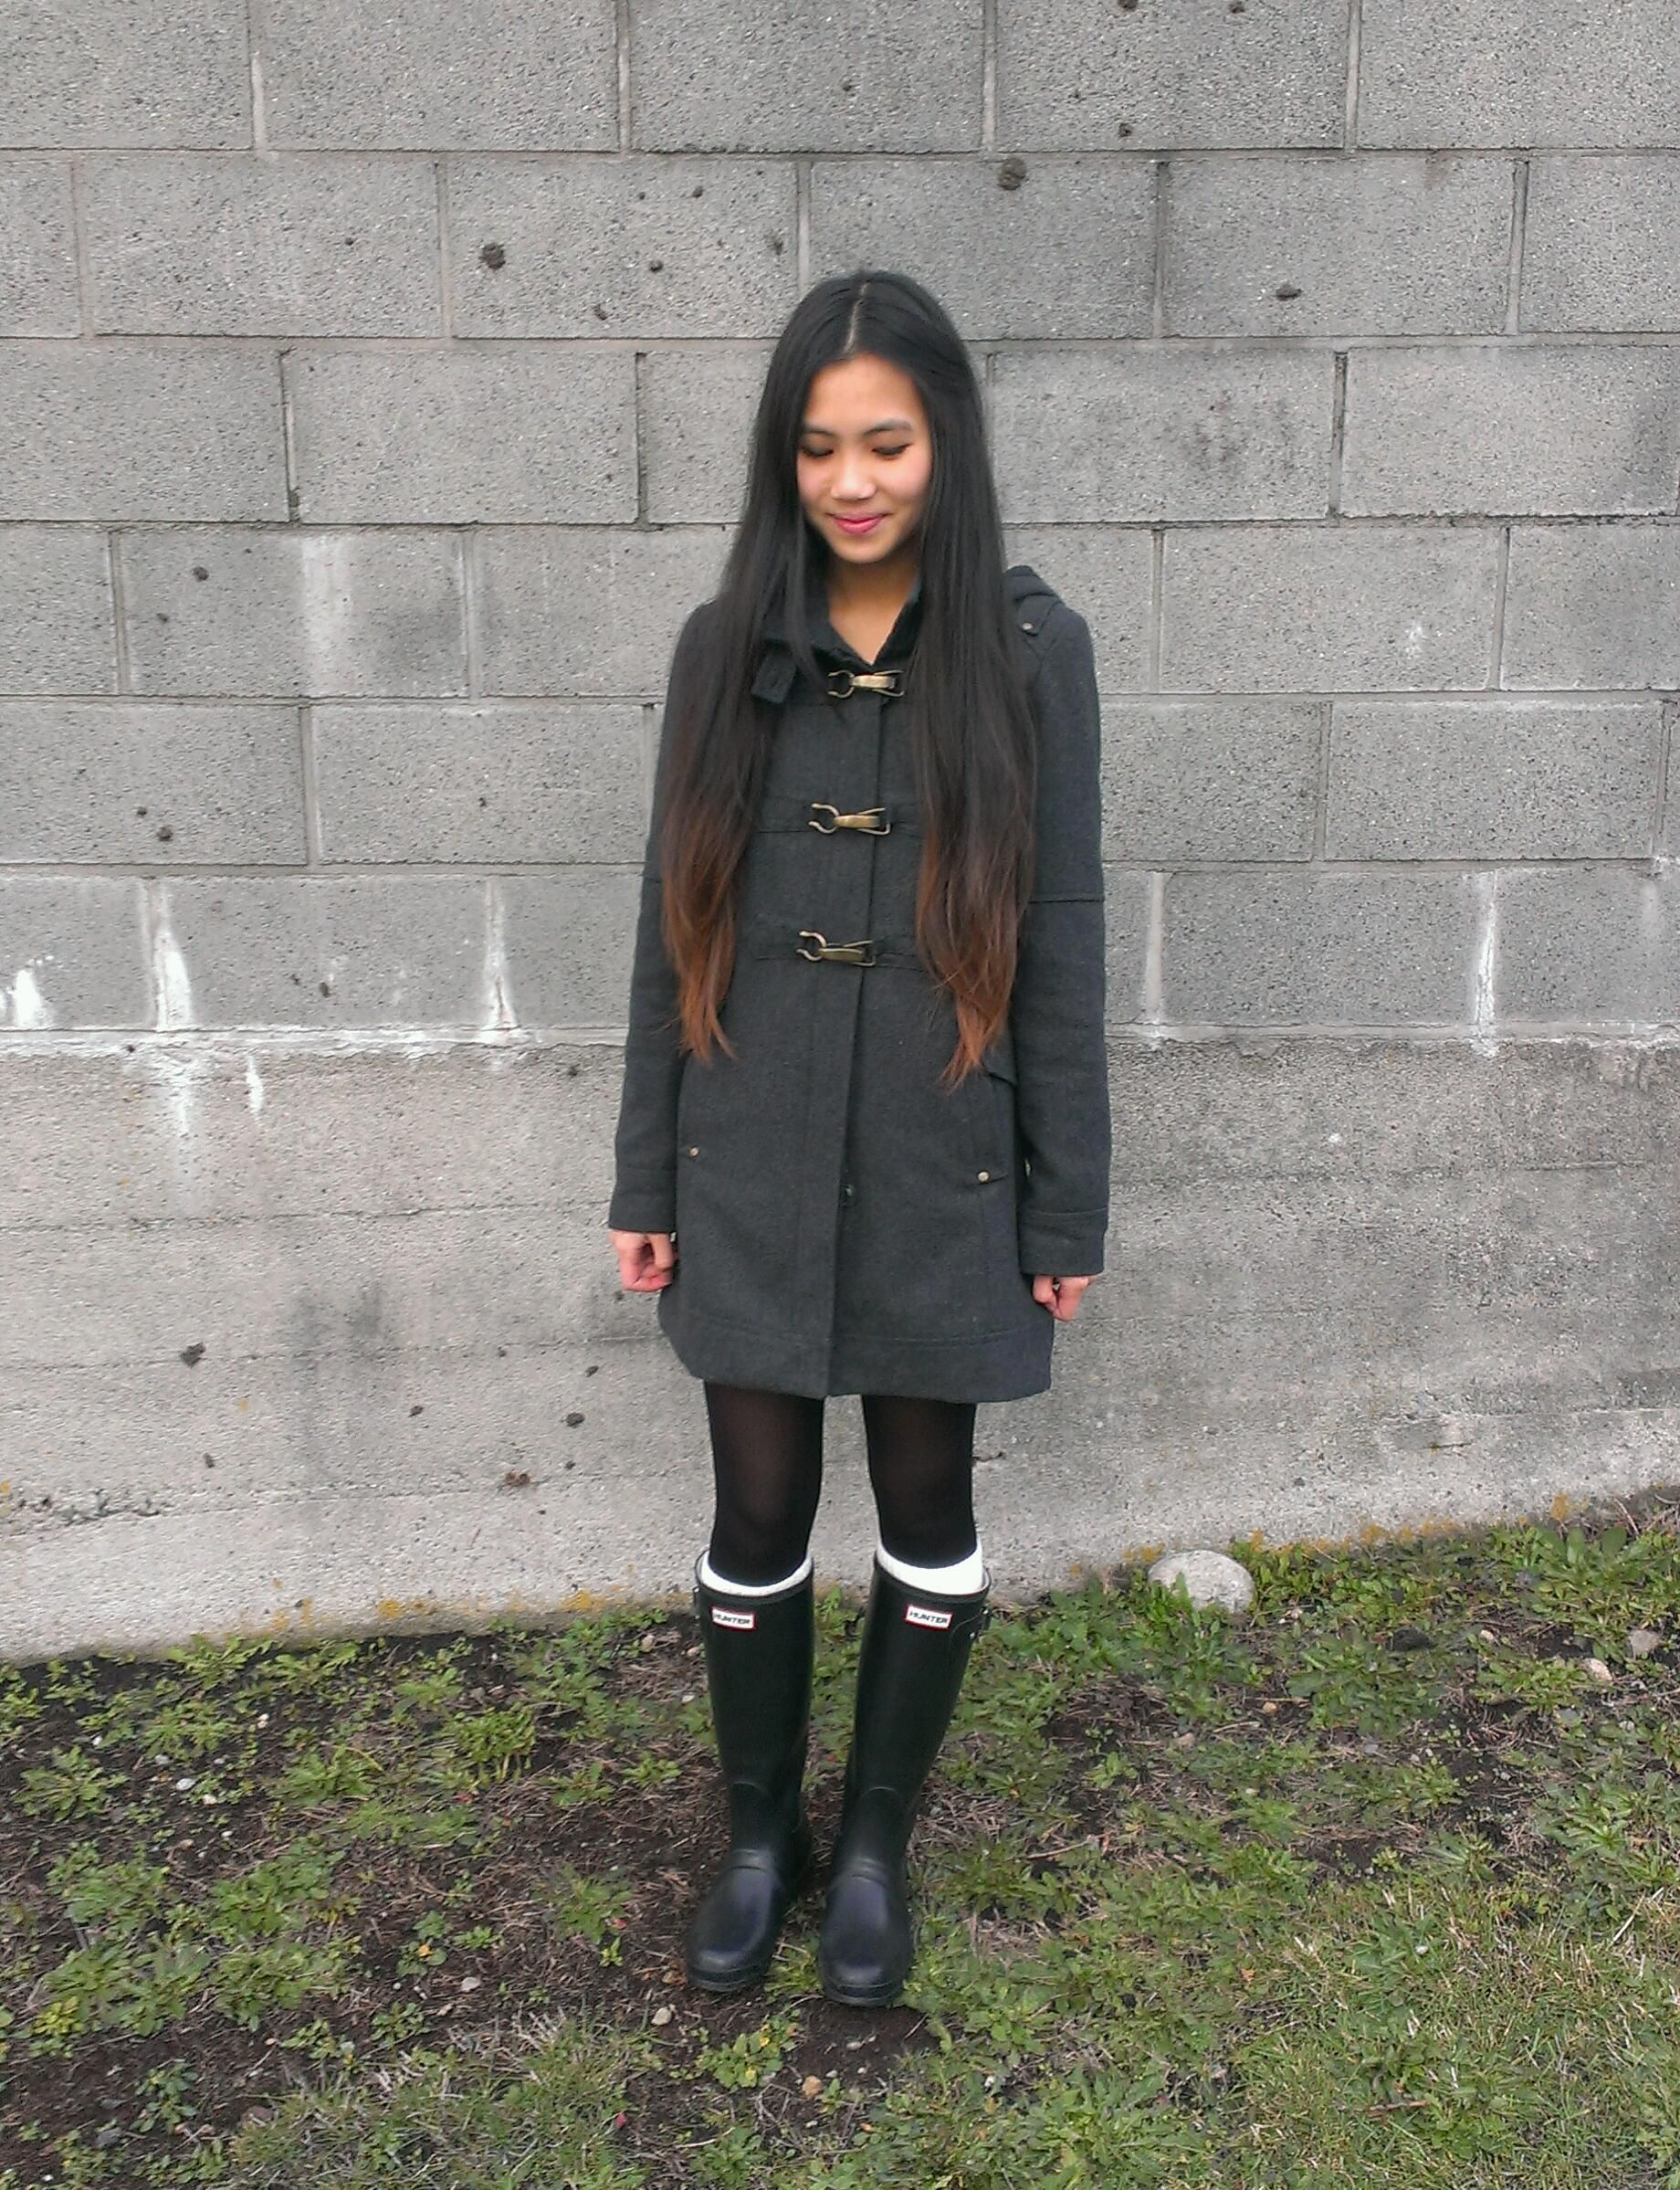 653aac82a57 Image result for HUNTER BOOTS OUTFITS | Fashion & Beauty | Hunter ...